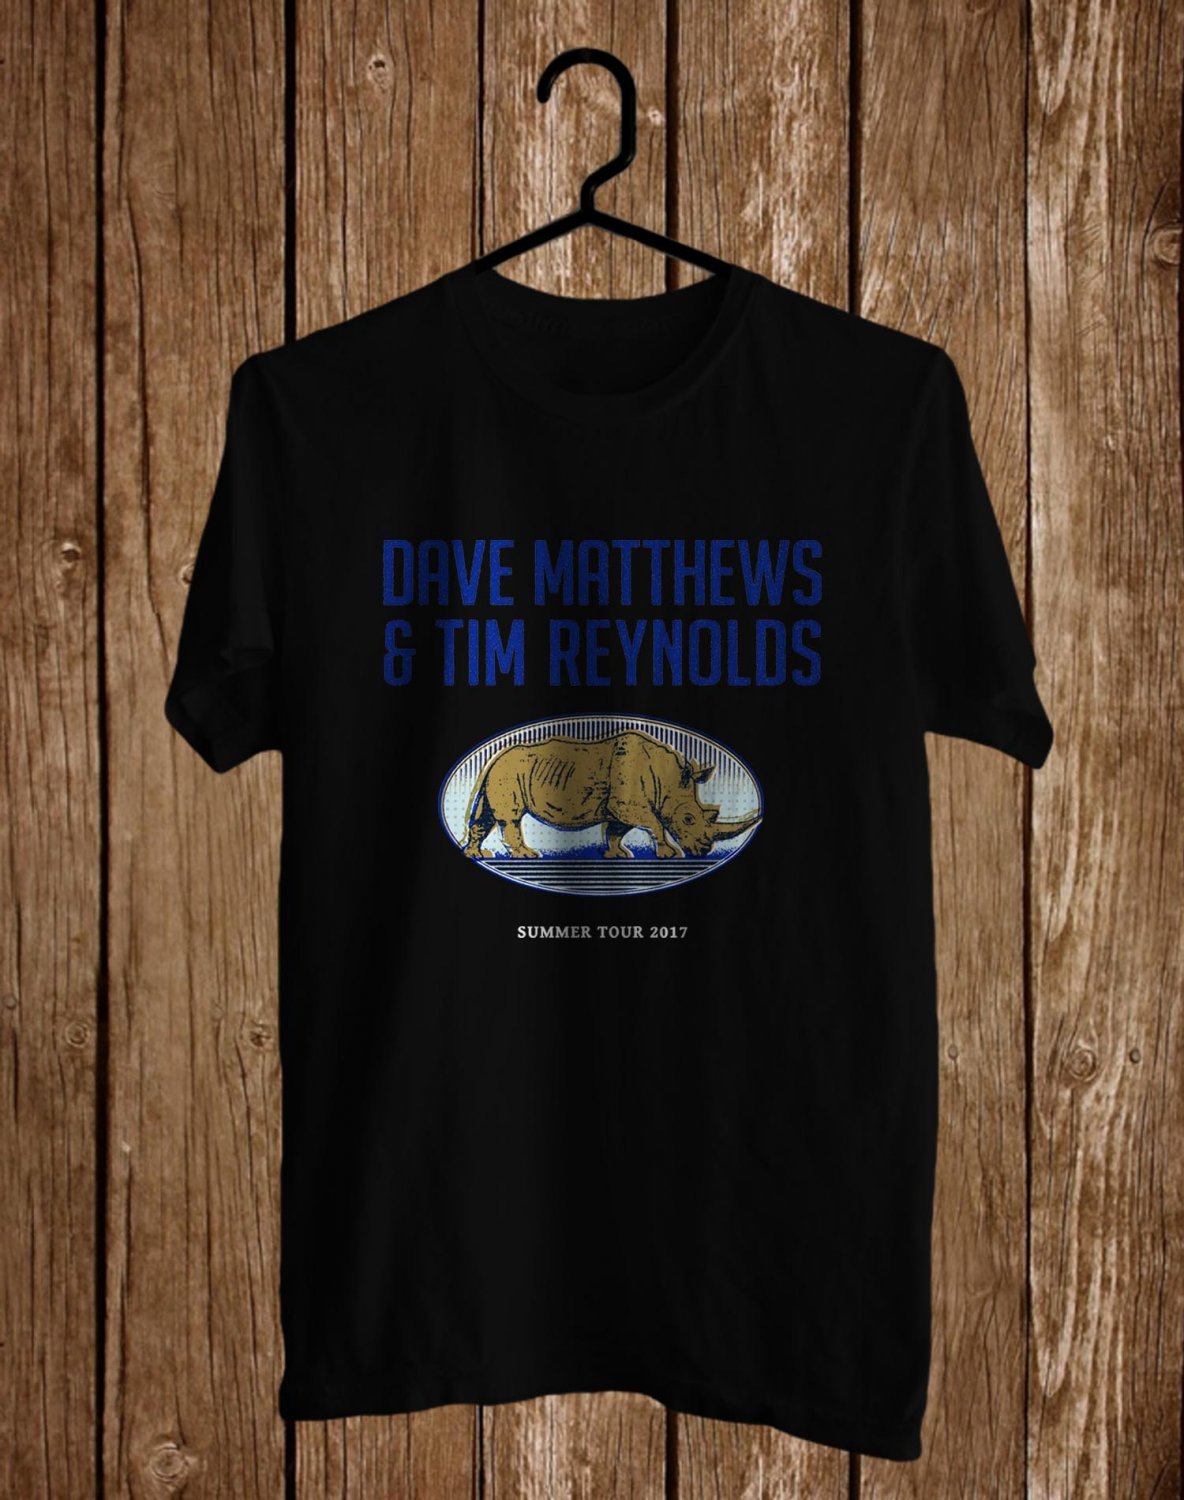 Dave Mattheews and Tim Reynolds Tour 2017 Black Tee's Front Side by Complexart z2